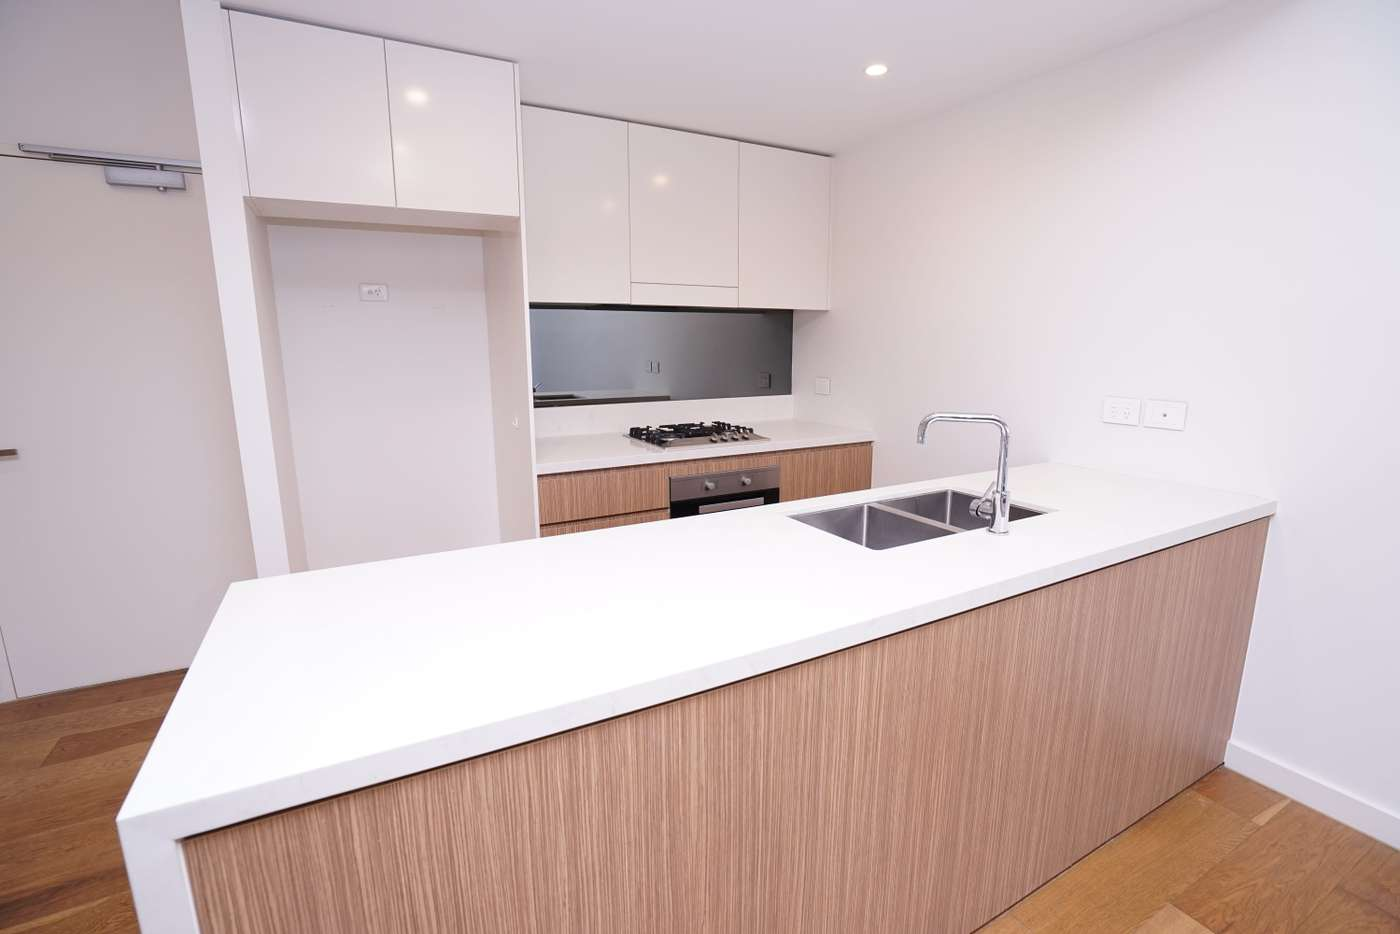 Sixth view of Homely apartment listing, 502/21 Verona Drive, Wentworth Point NSW 2127